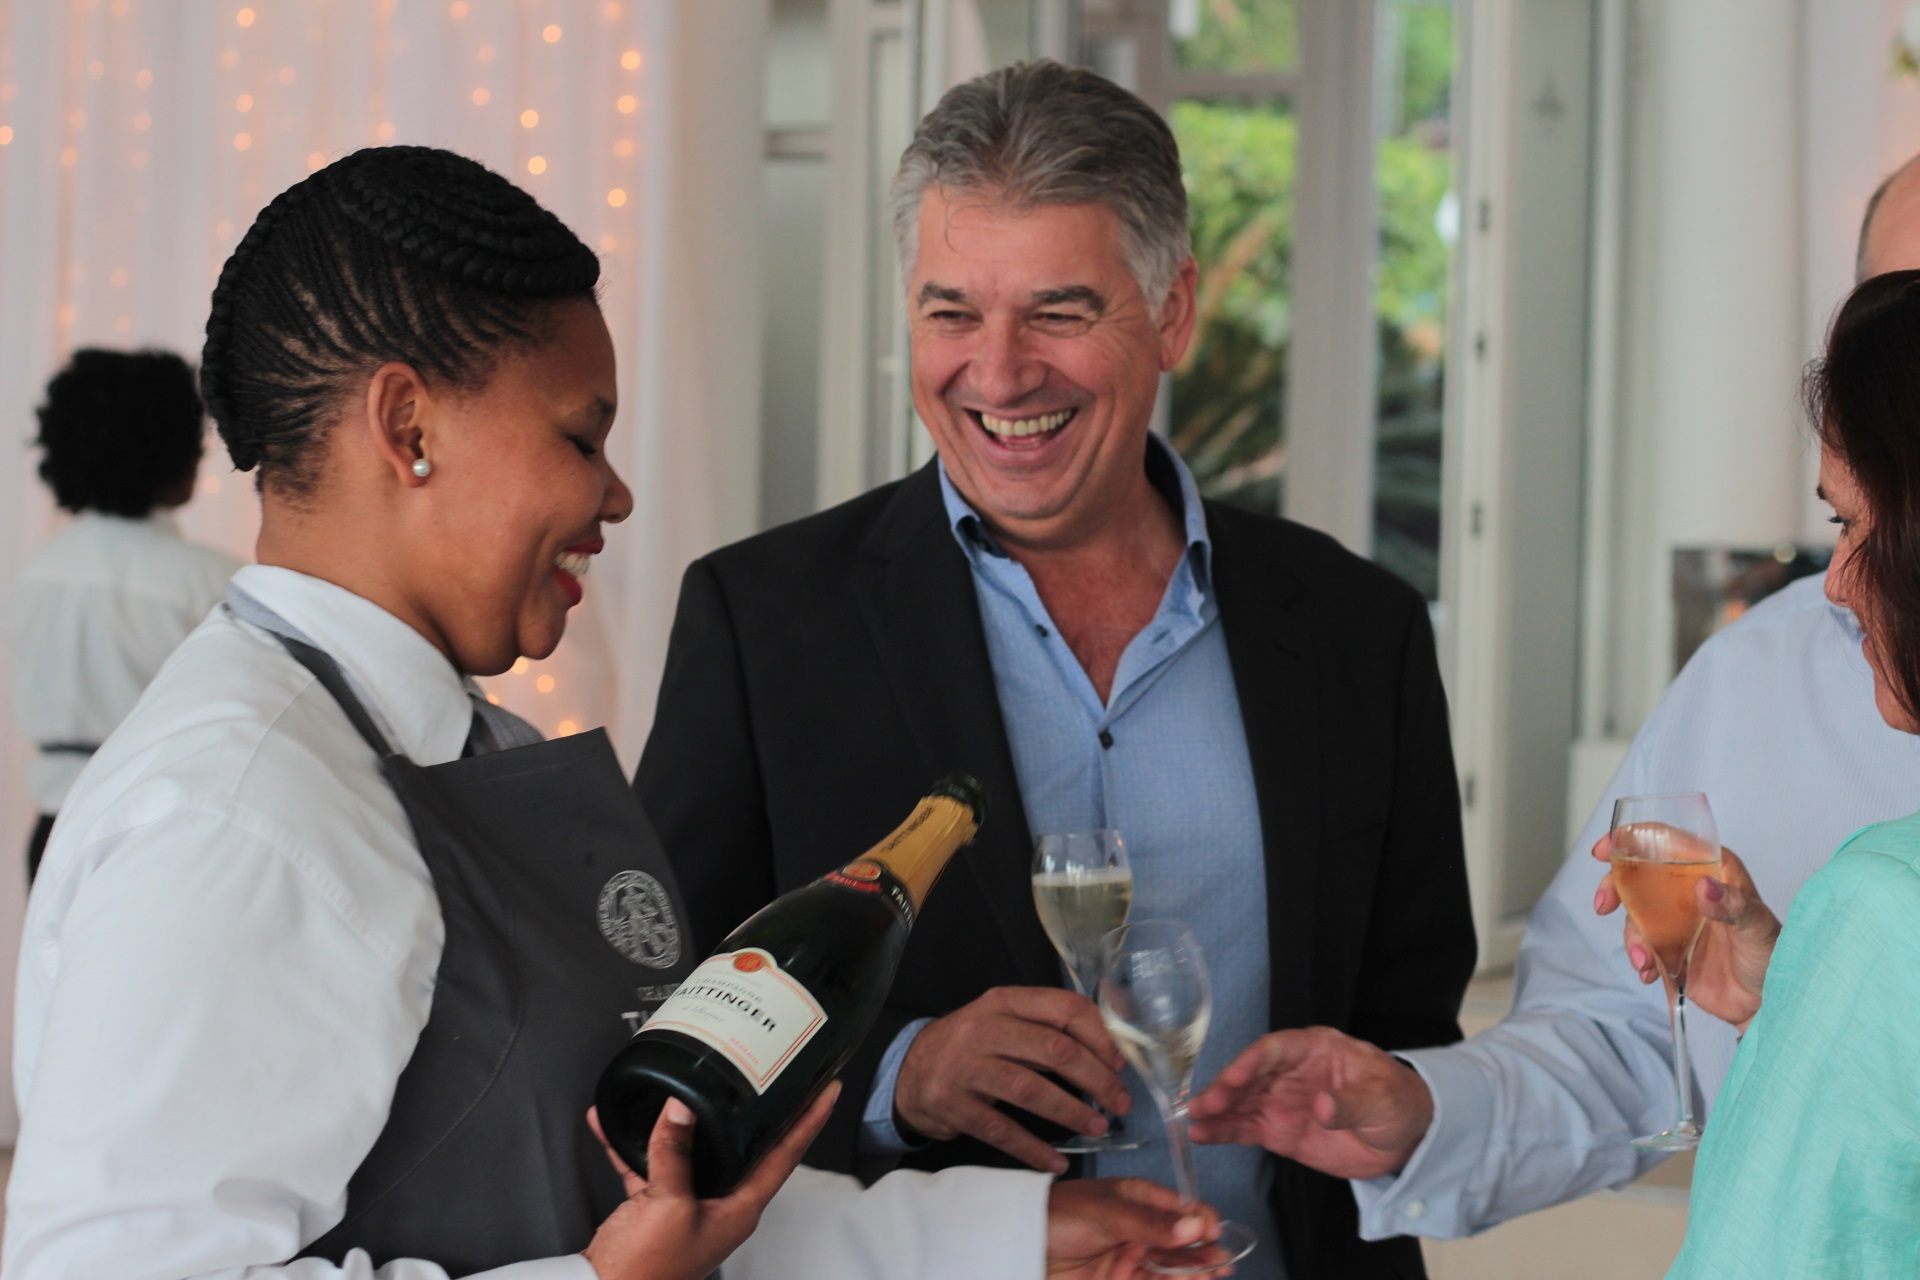 Global Champagne Day 2016 - The 12 Apostles Hotel